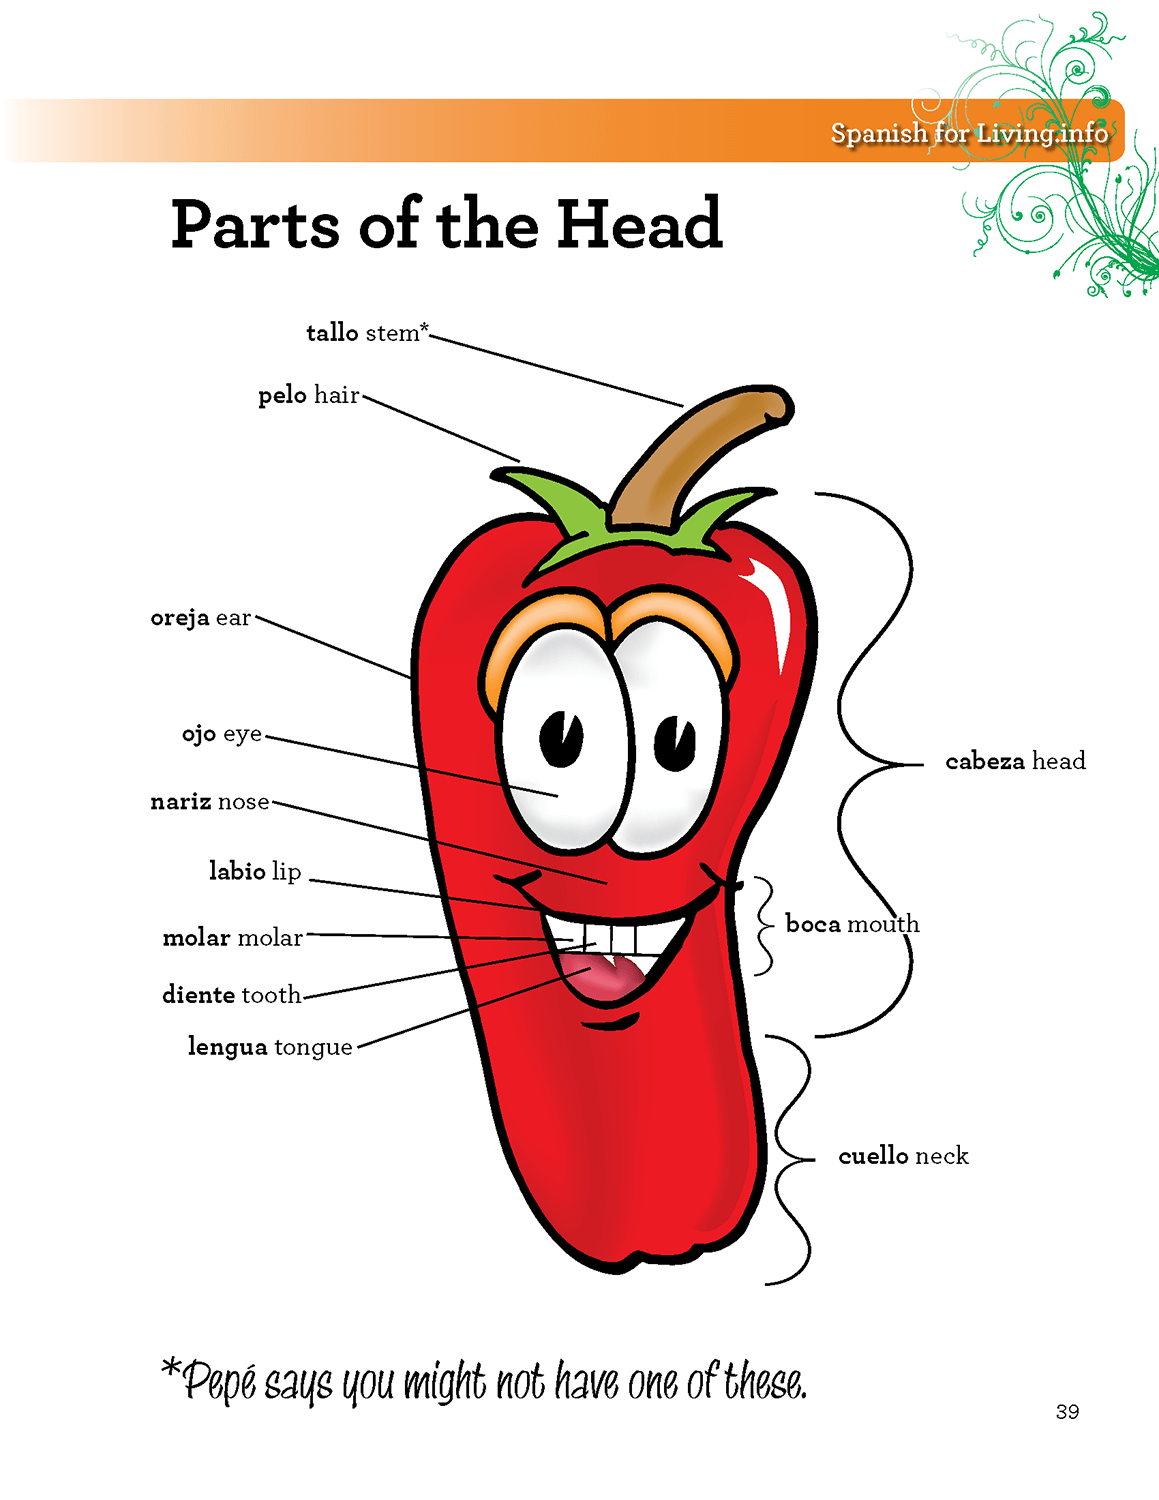 Parts of the Head from Textbook